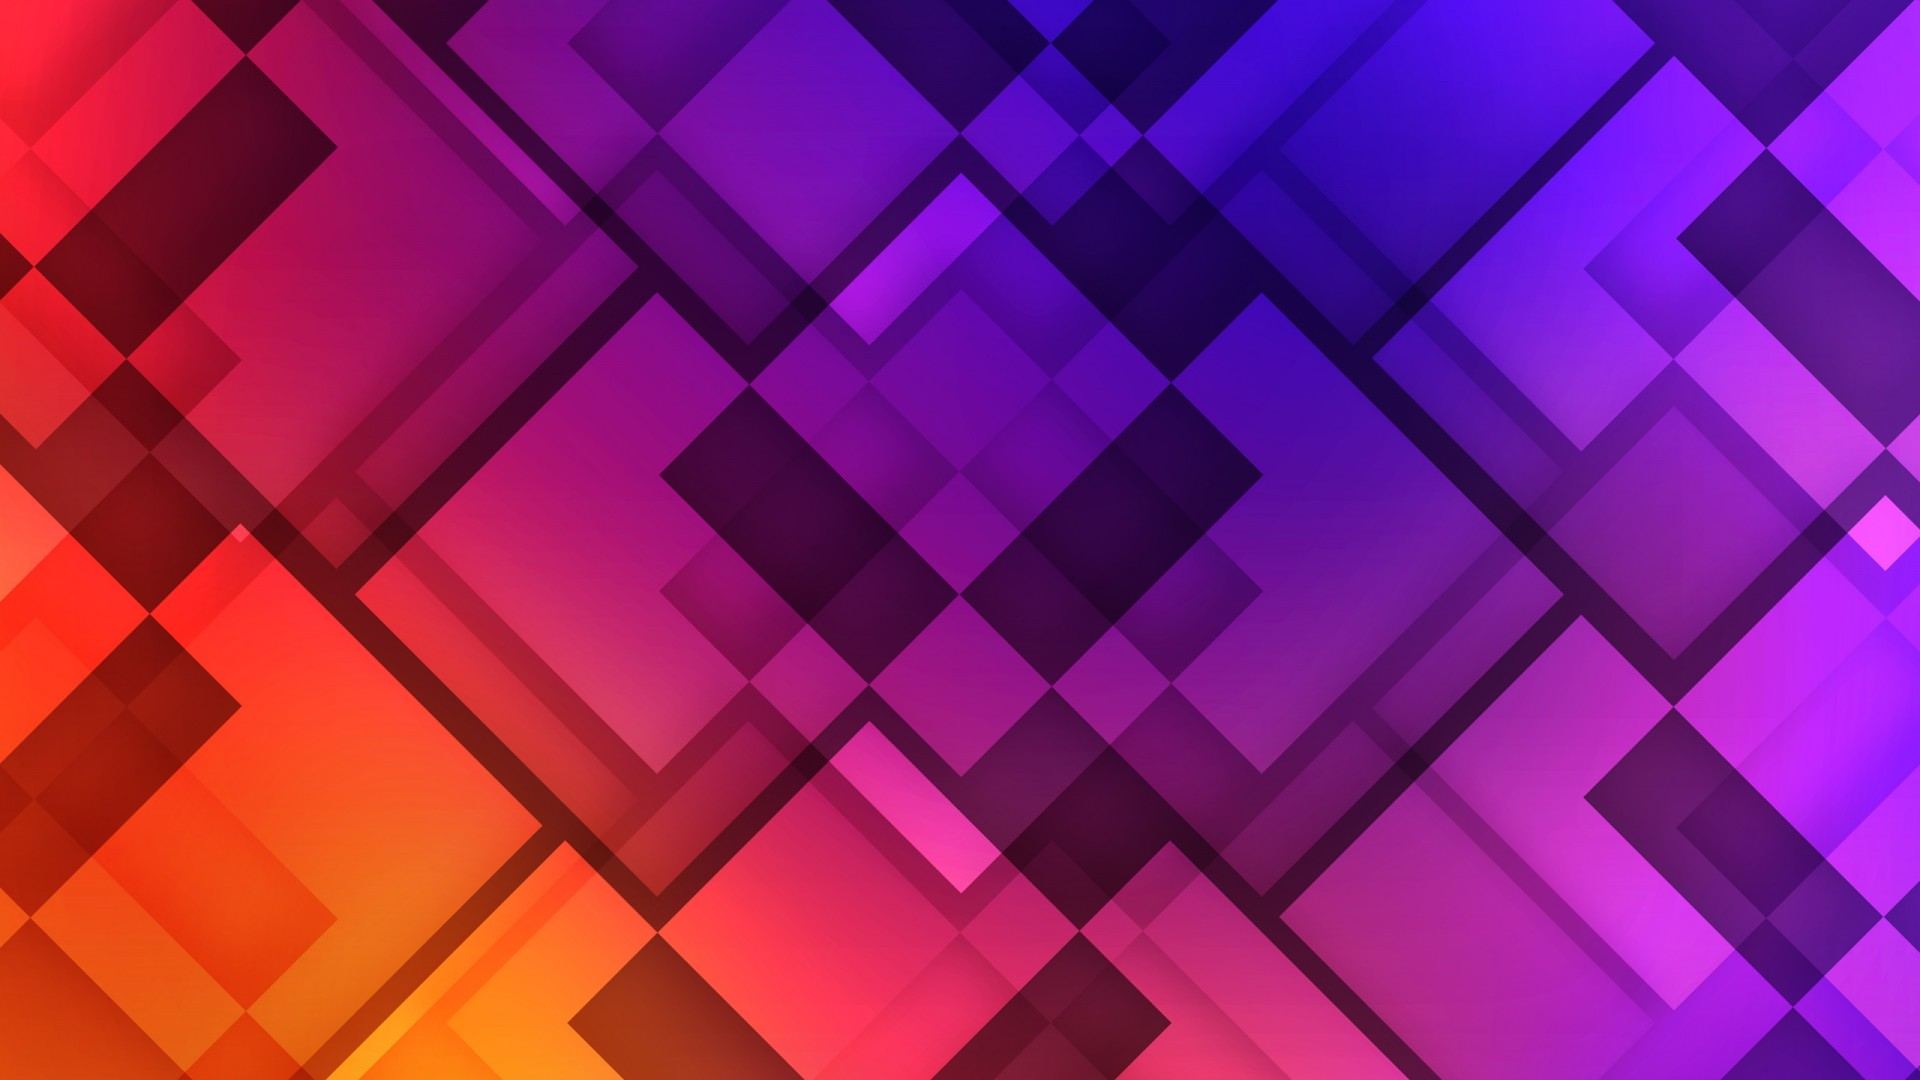 3d Graphic Wallpaper 1280x1024 Colorful Mosaic Hd Wallpapers Hd Wallpapers Id 21108